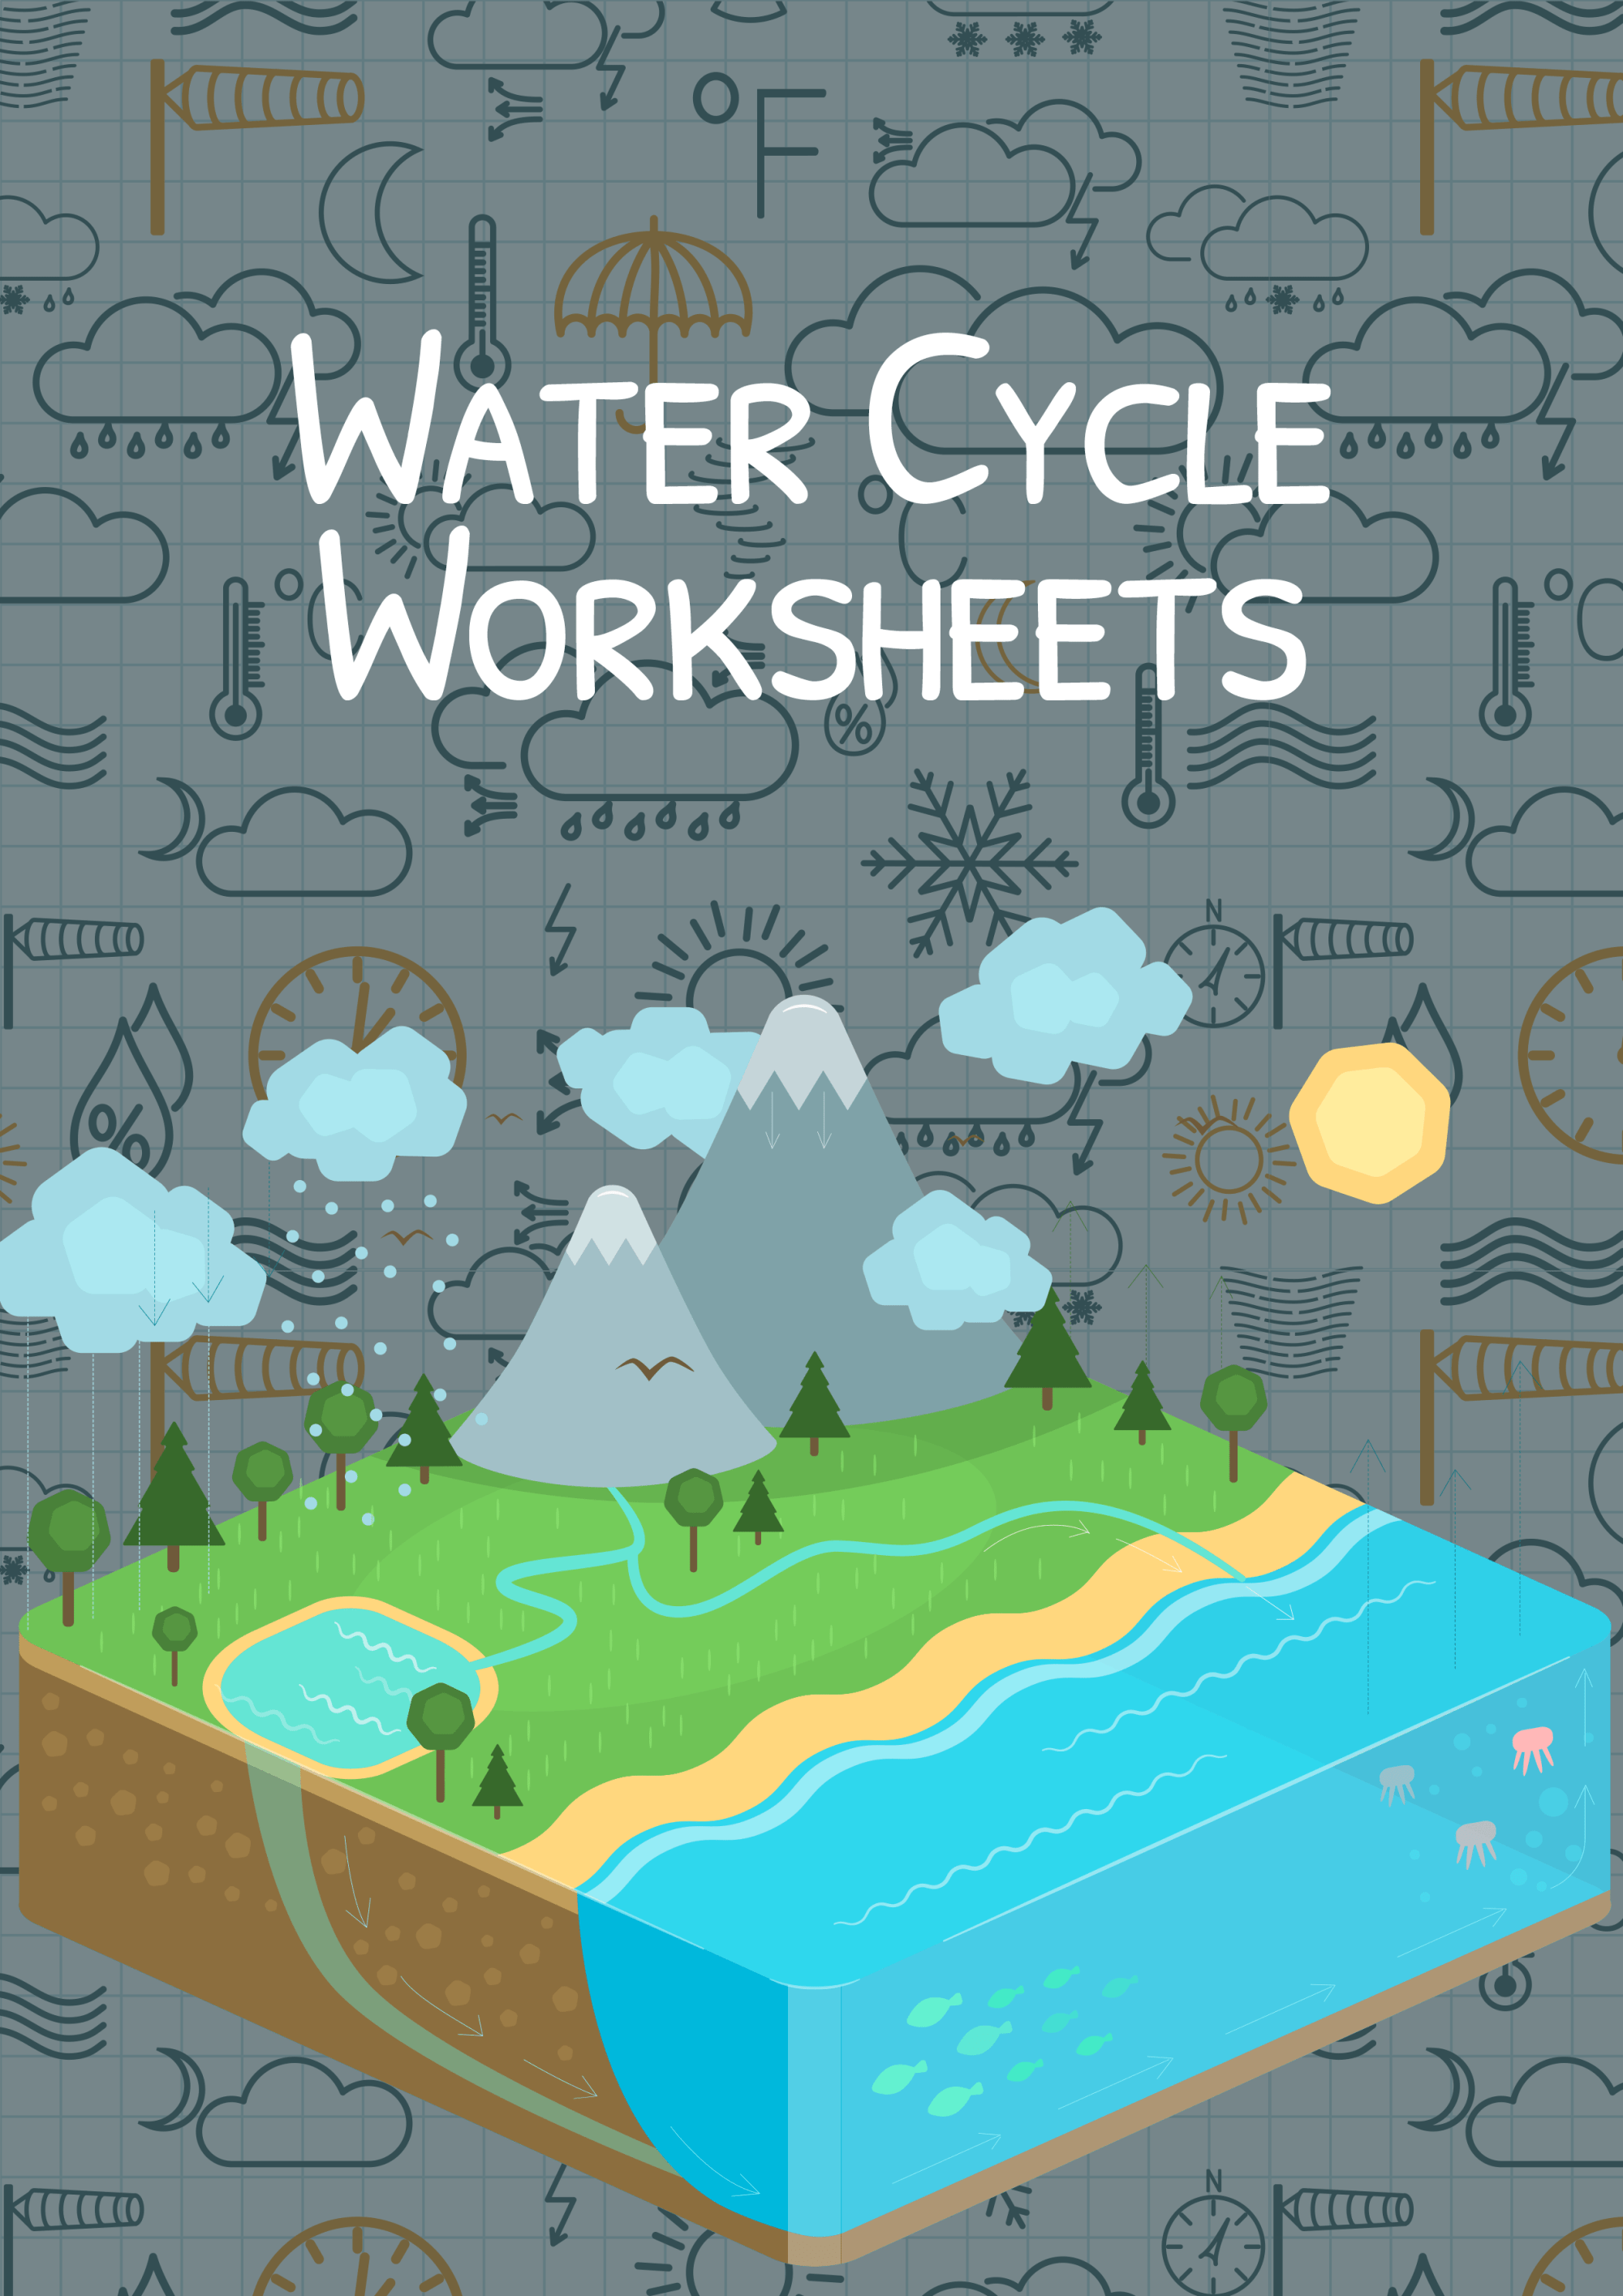 hight resolution of The Water Cycle Worksheet for Kids   Water Cycle Summary